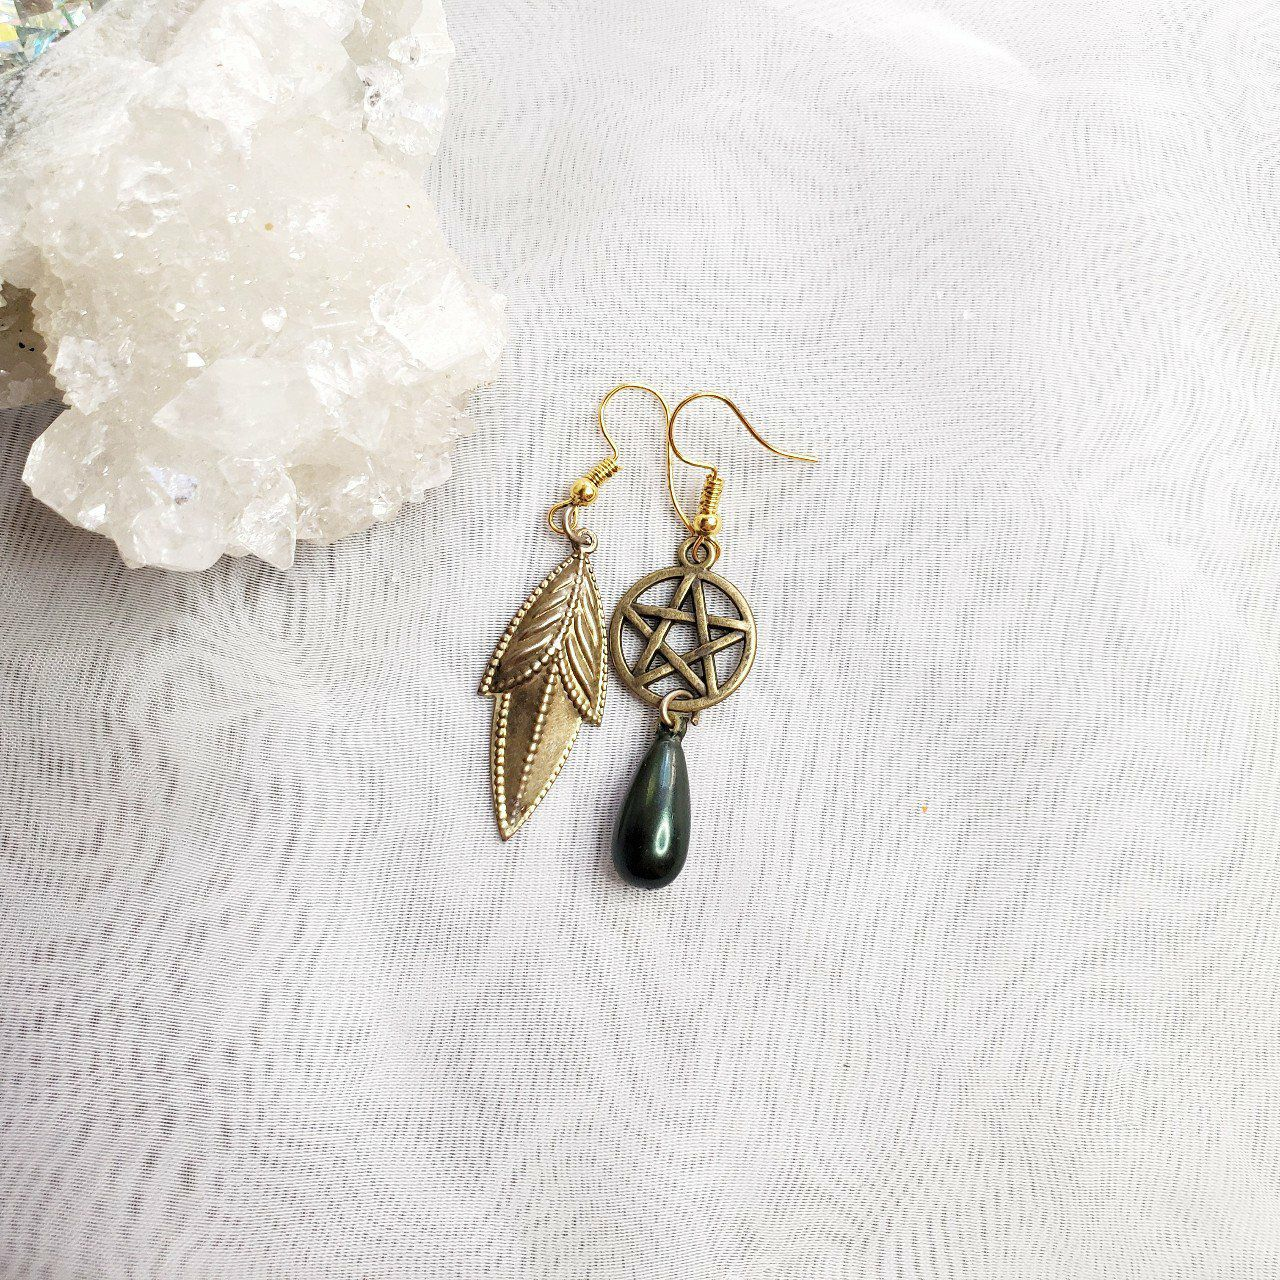 Handmade Witch Gothique Earrings